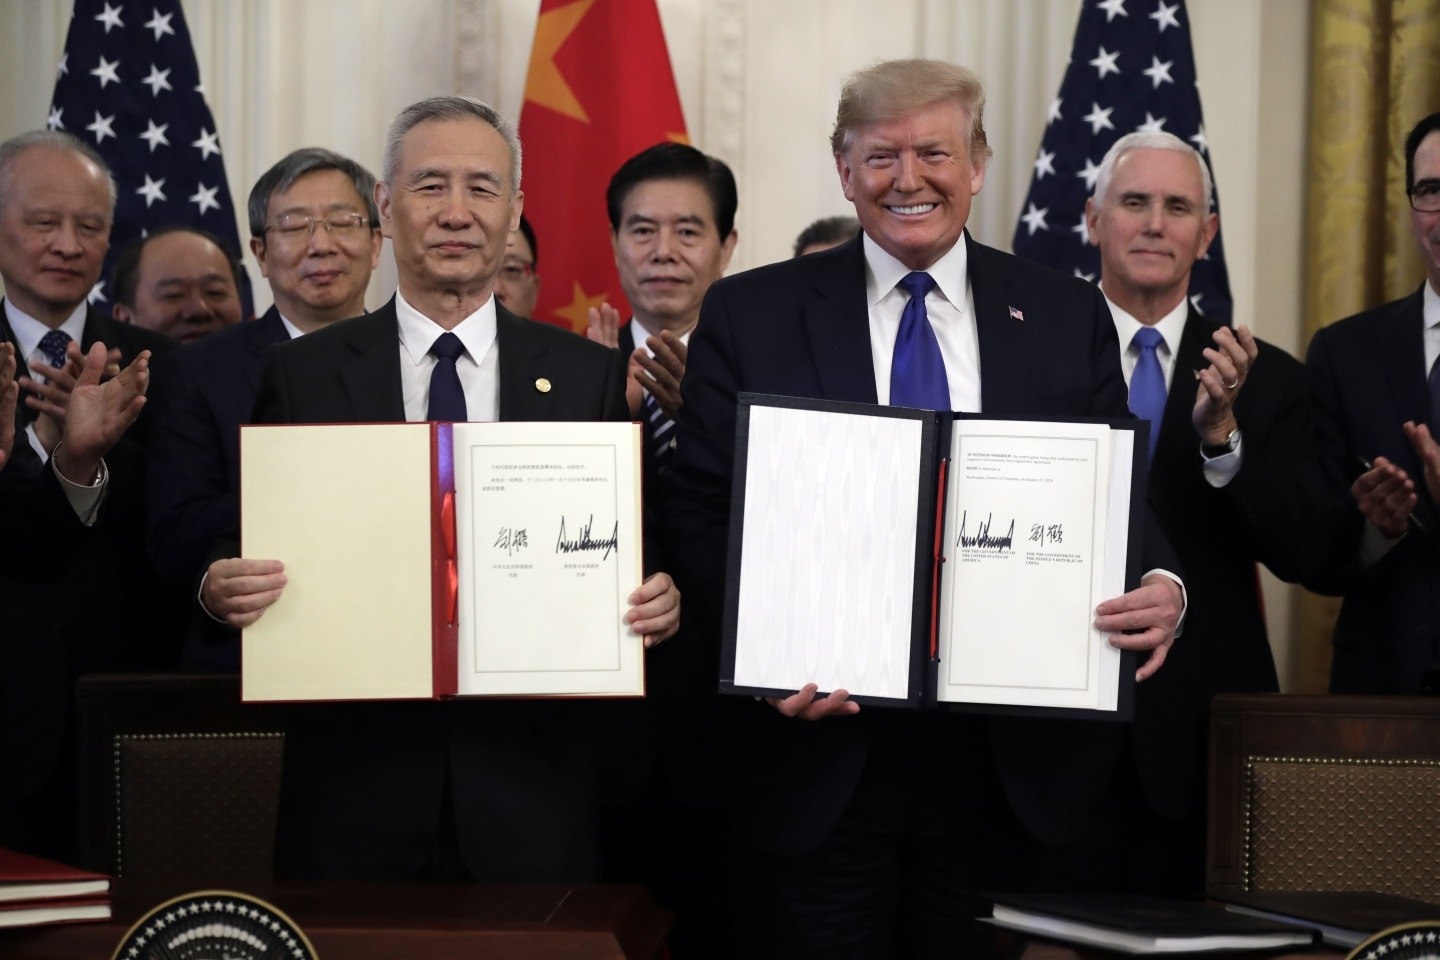 U.S. President Donald Trump, right, signs a trade agreement with Chinese Vice Premier Liu He. (AP Photo/Evan Vucci)